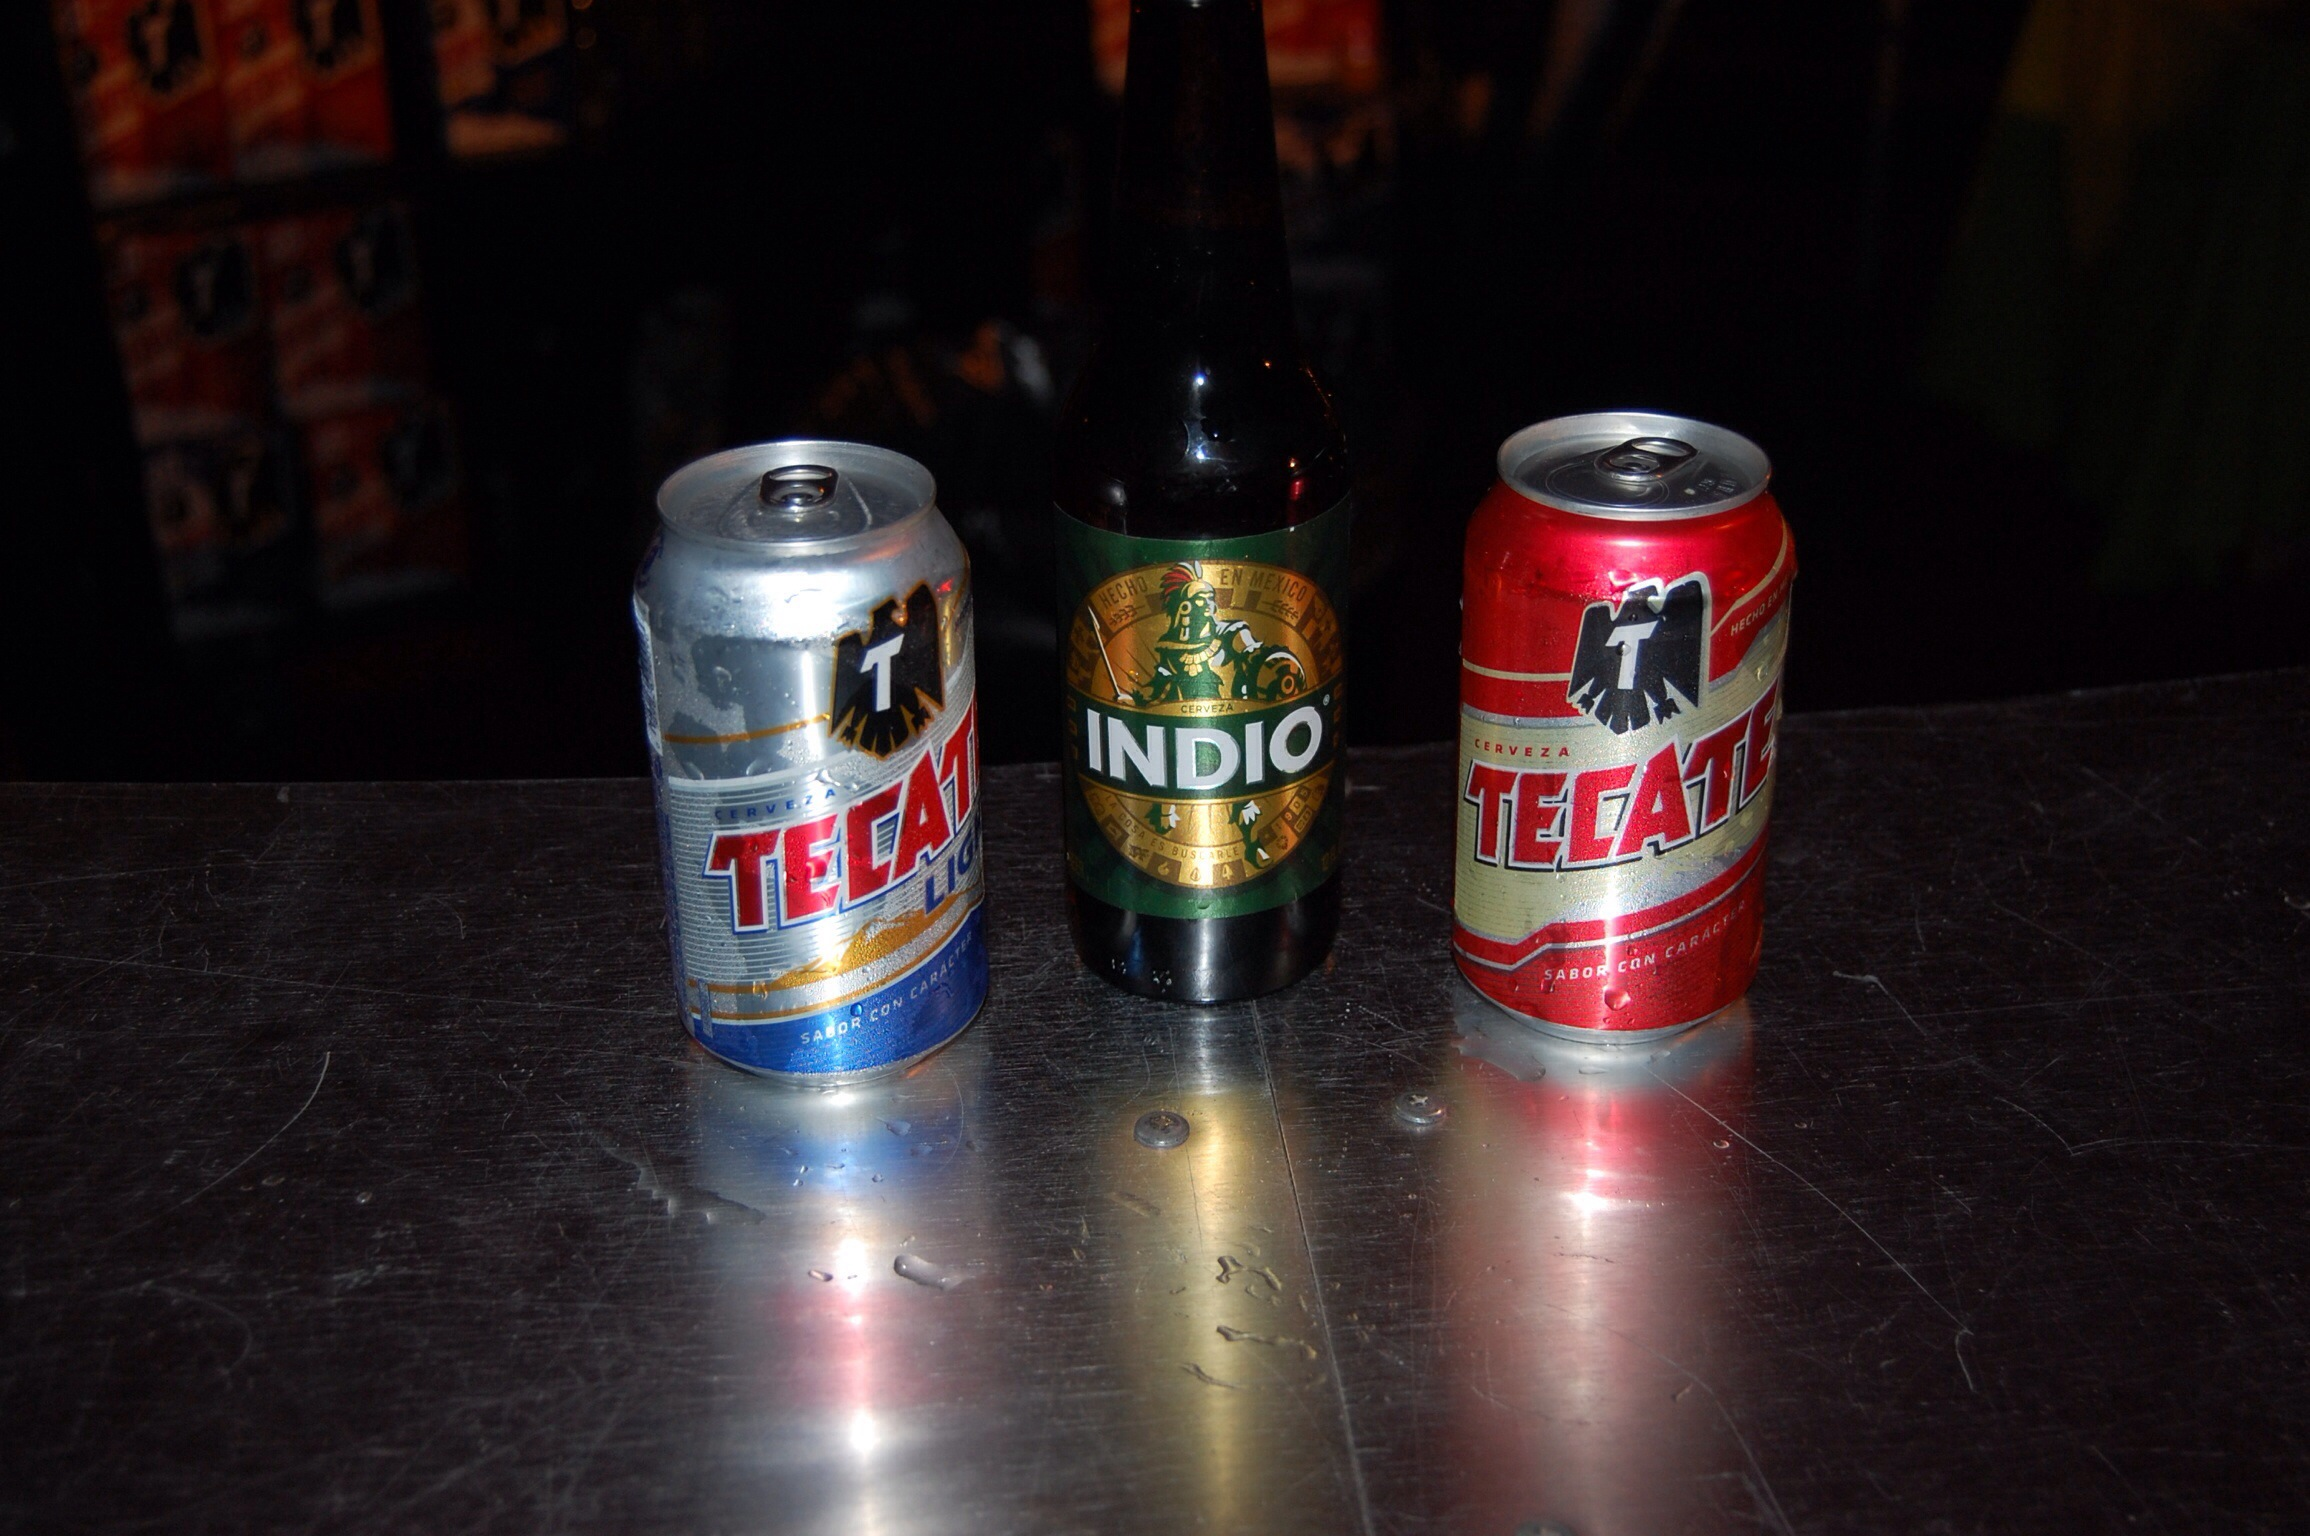 Tecate Beer at The Taste of Mexico 2013